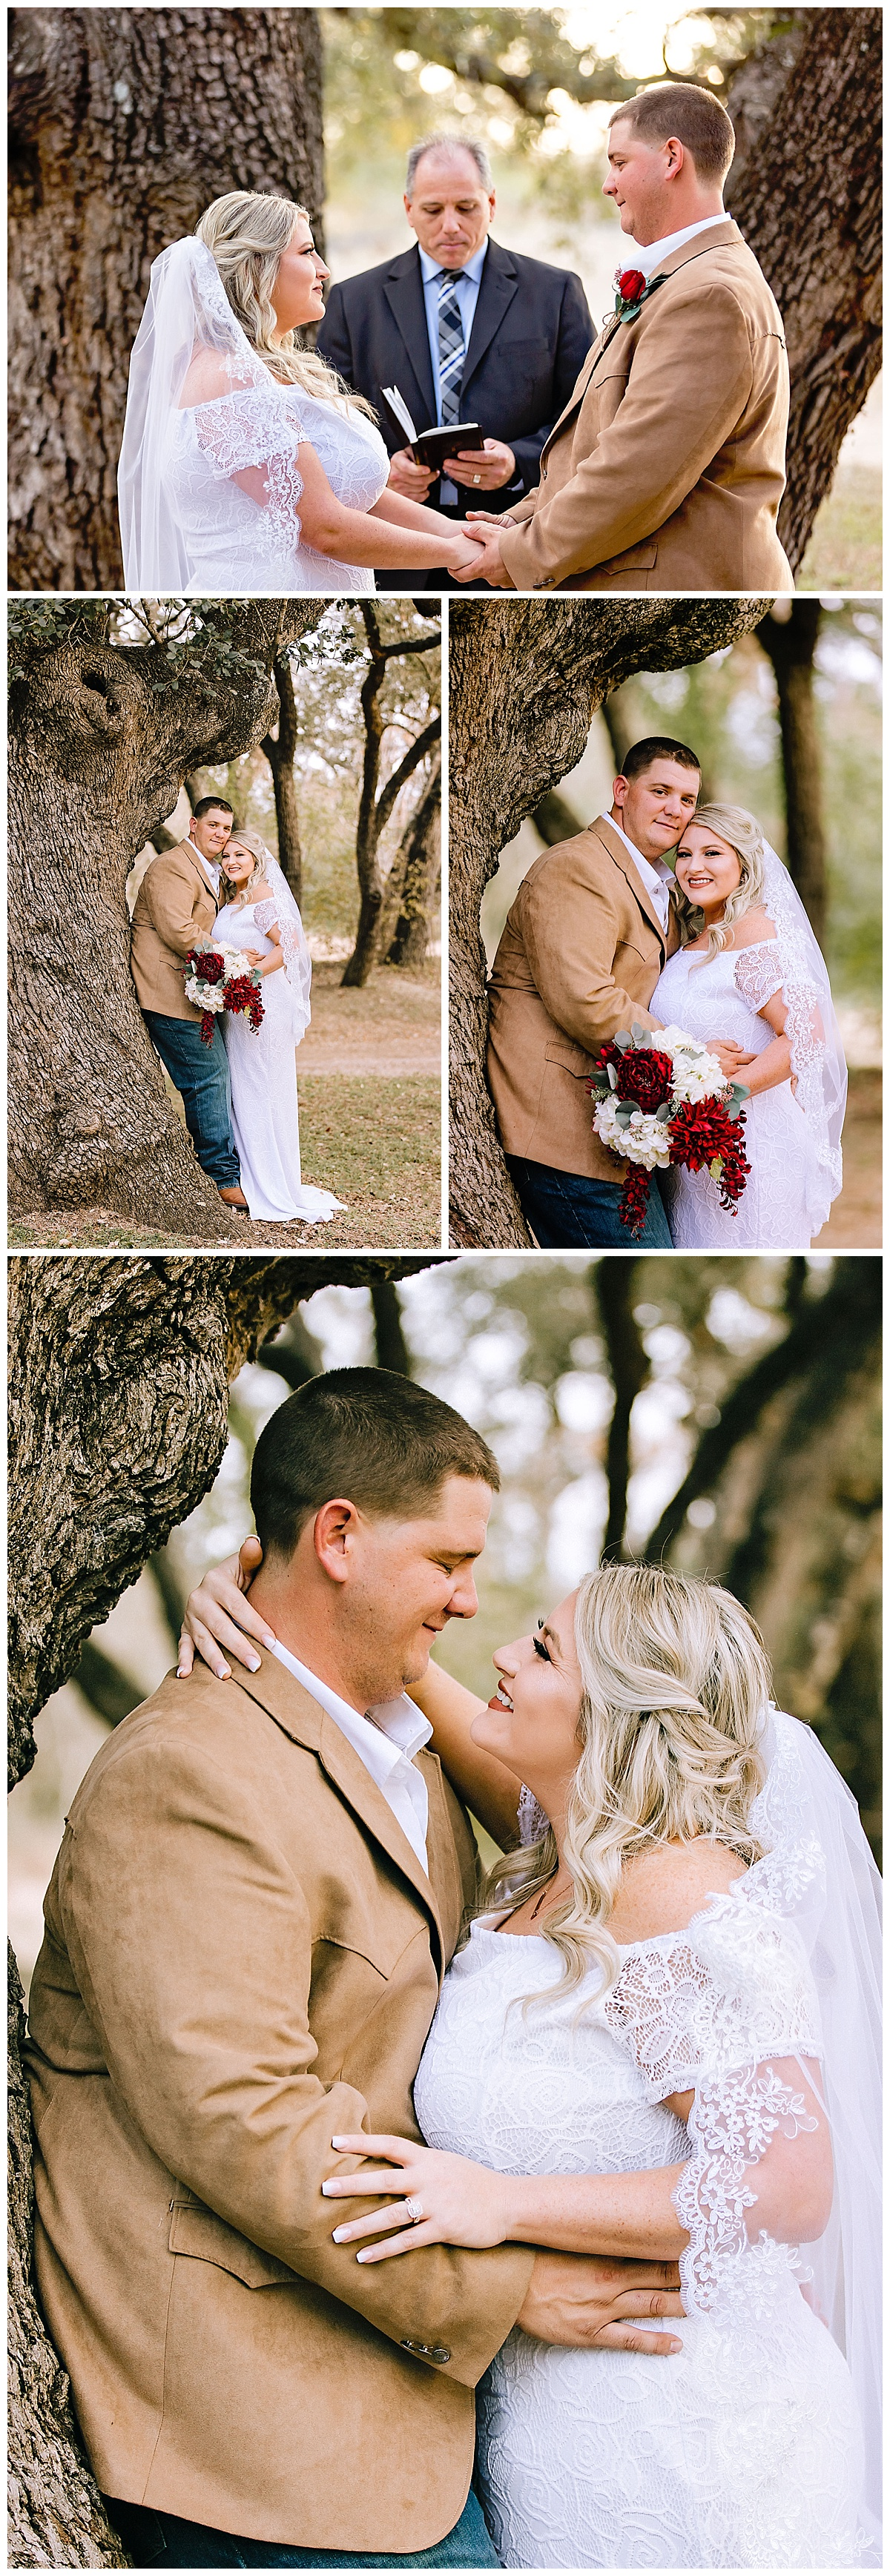 Wedding-Photographer-LaVernia-Texas-Ceremony-Under-the-Trees-Bride-Groom-Fall-McDonald-Carly-Barton-Photography_0015.jpg